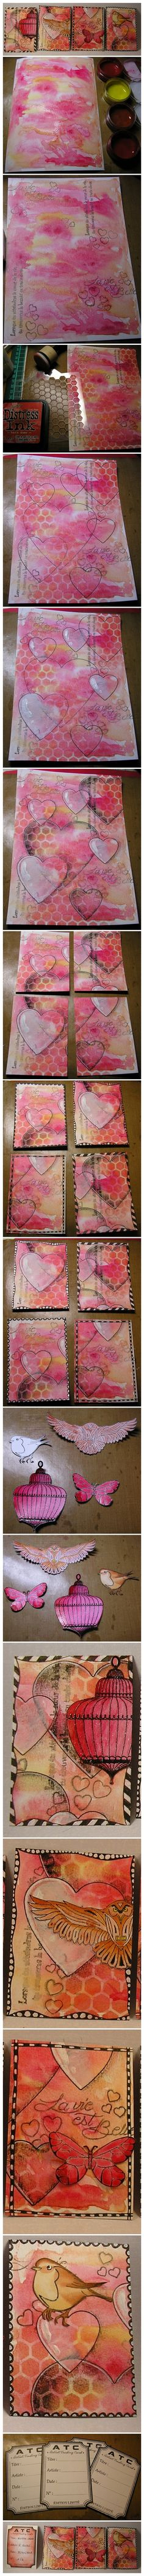 Pretty watercolor backgrounds for journaling, art, ATCs, etc.